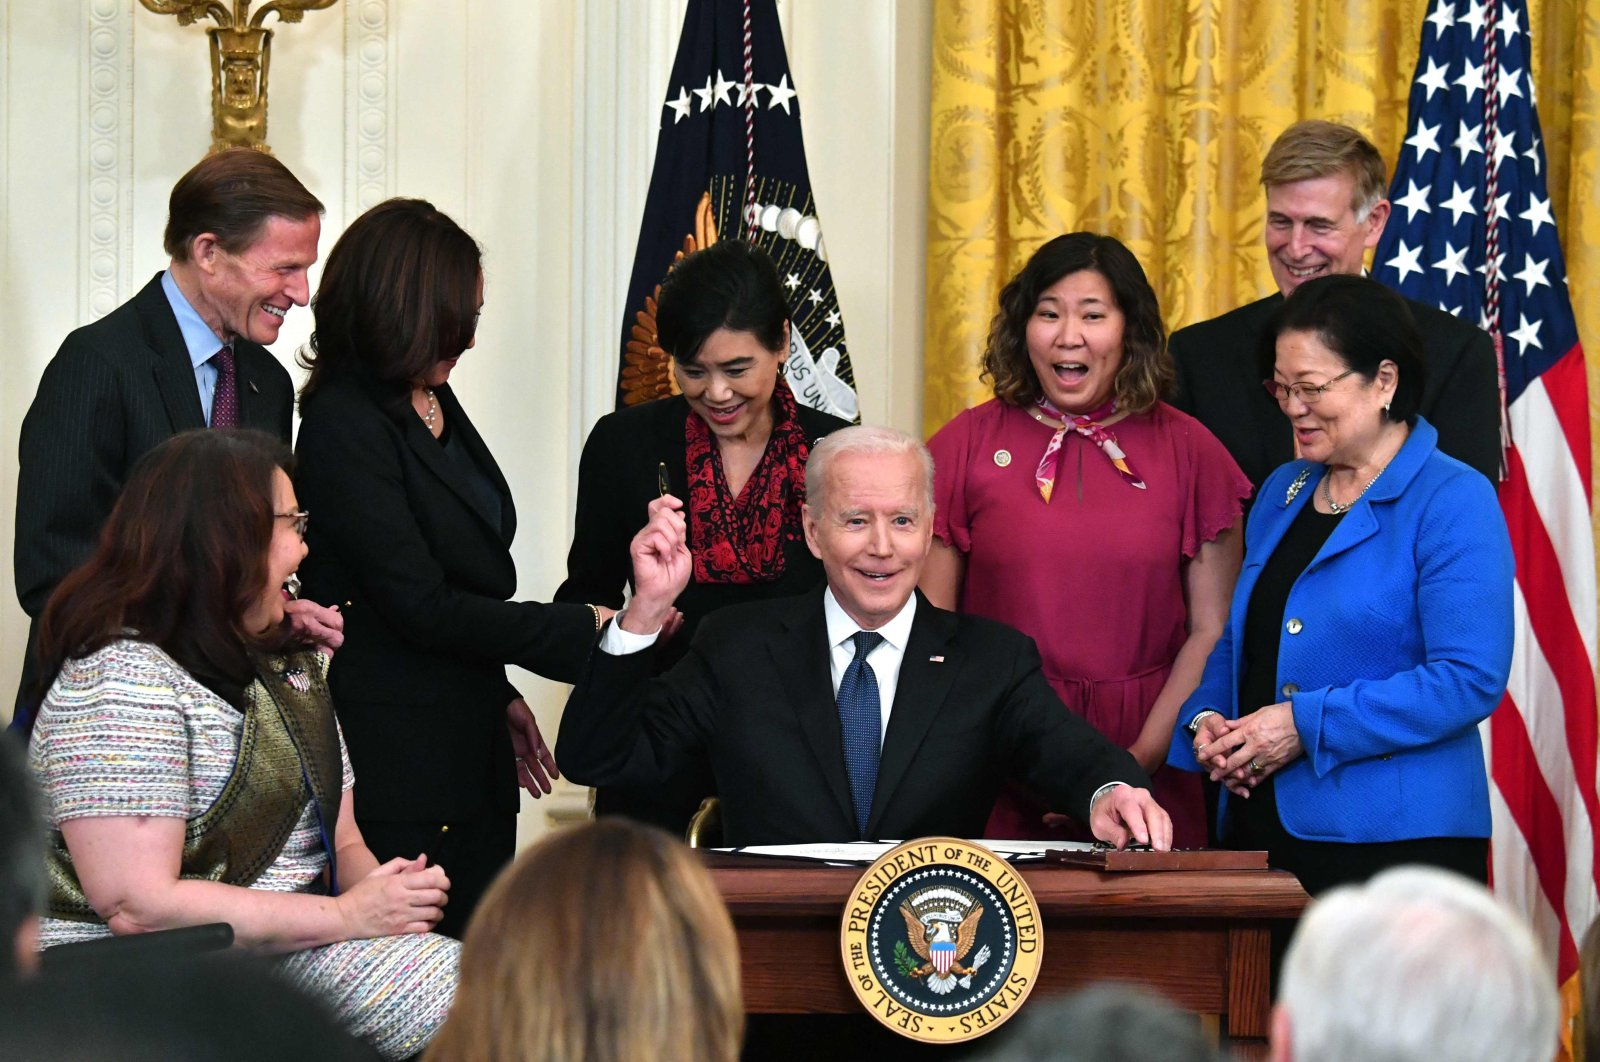 U.S. President Joe Biden smiles after signing into law a new bill addressing hate crimes against Asian Americans, in the East Room of the White House in Washington, D.C., U.S., May 20, 2021. (AFP Photo)